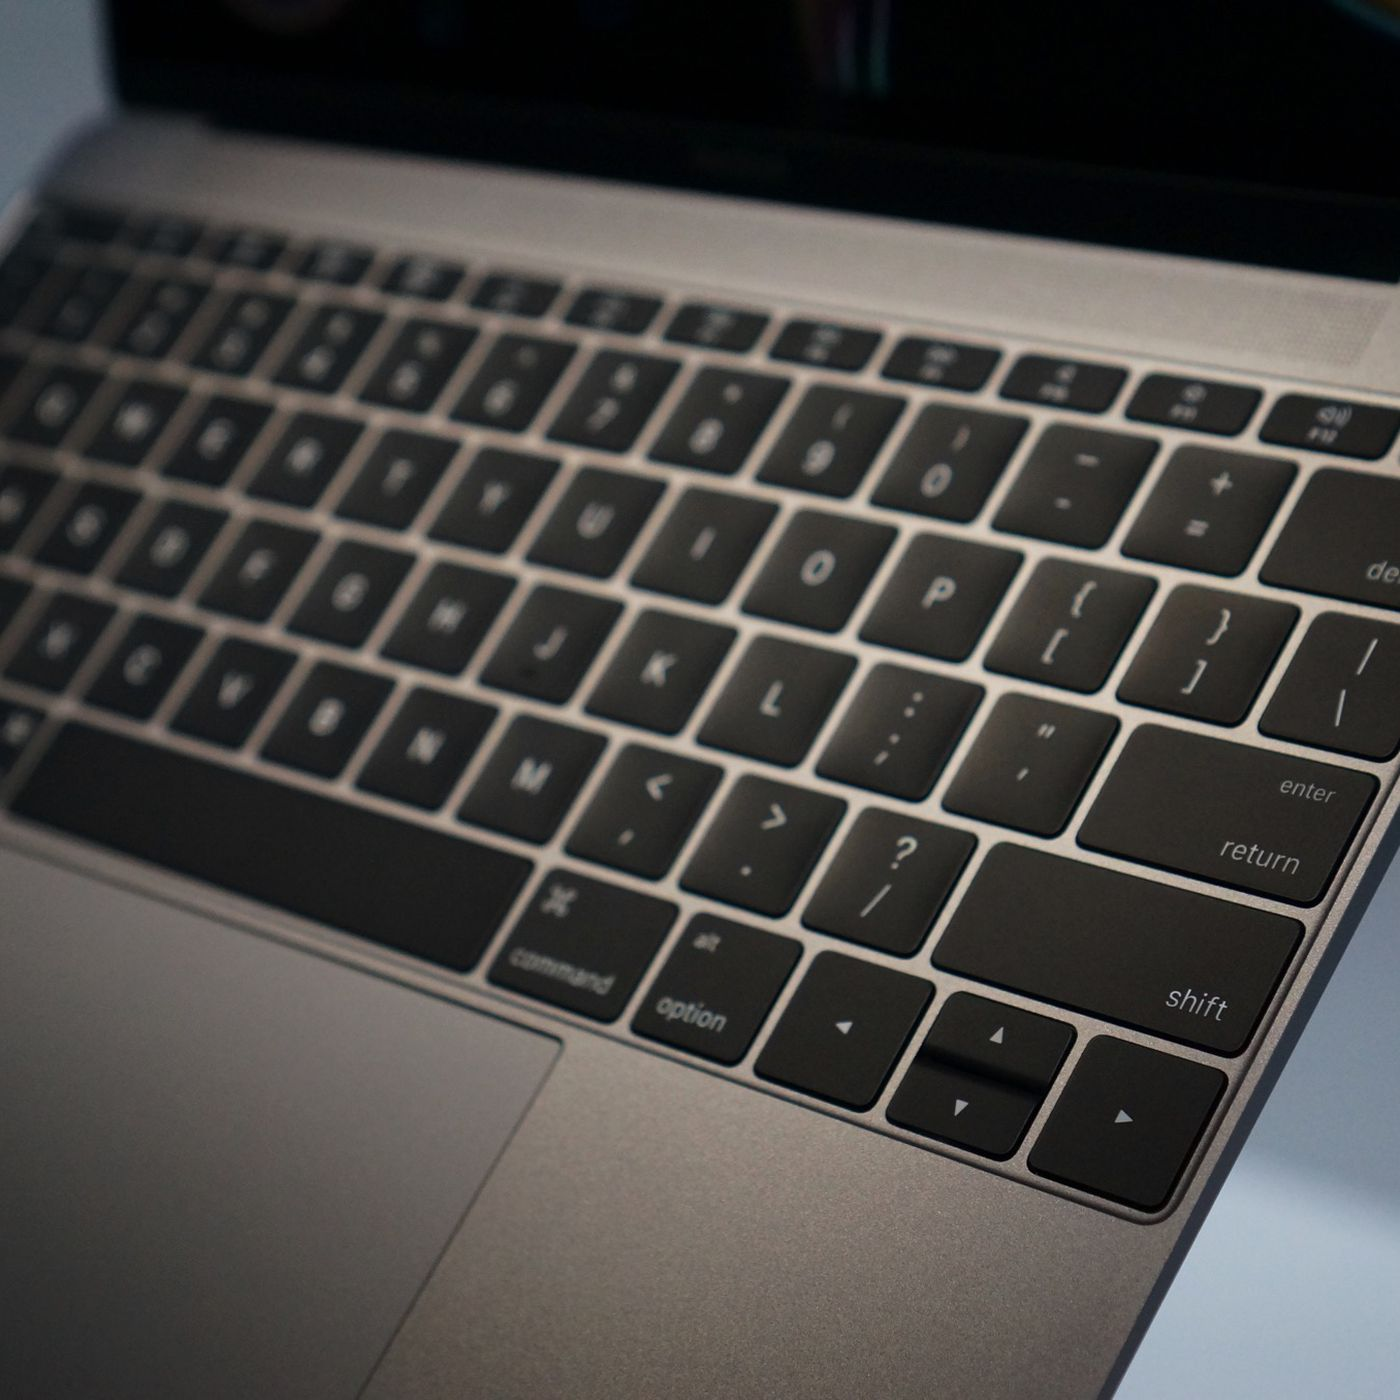 Apple S New Macbook Keyboard Fix Is Reassuring And Worrying At The Same Time The Verge